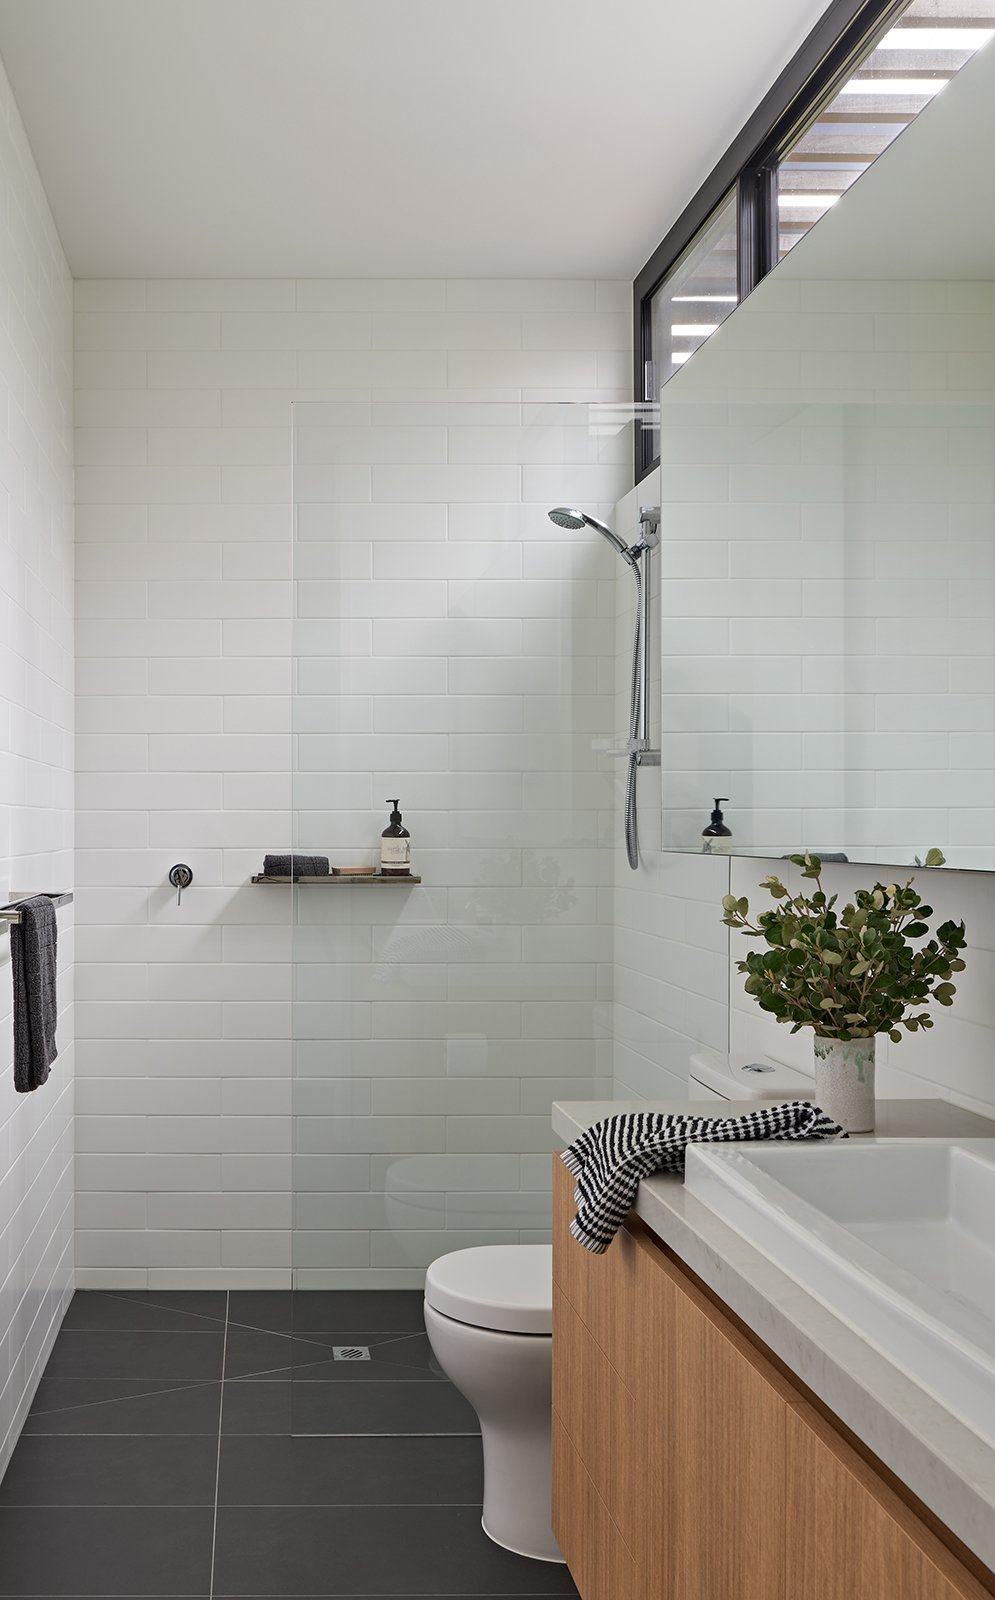 Bath Room, Subway Tile Wall, Ceramic Tile Floor, Granite Counter, Ceiling Lighting, Ceramic Tile Wall, One Piece Toilet, Wall Mount Sink, and Open Shower  The Balnarring Beach House